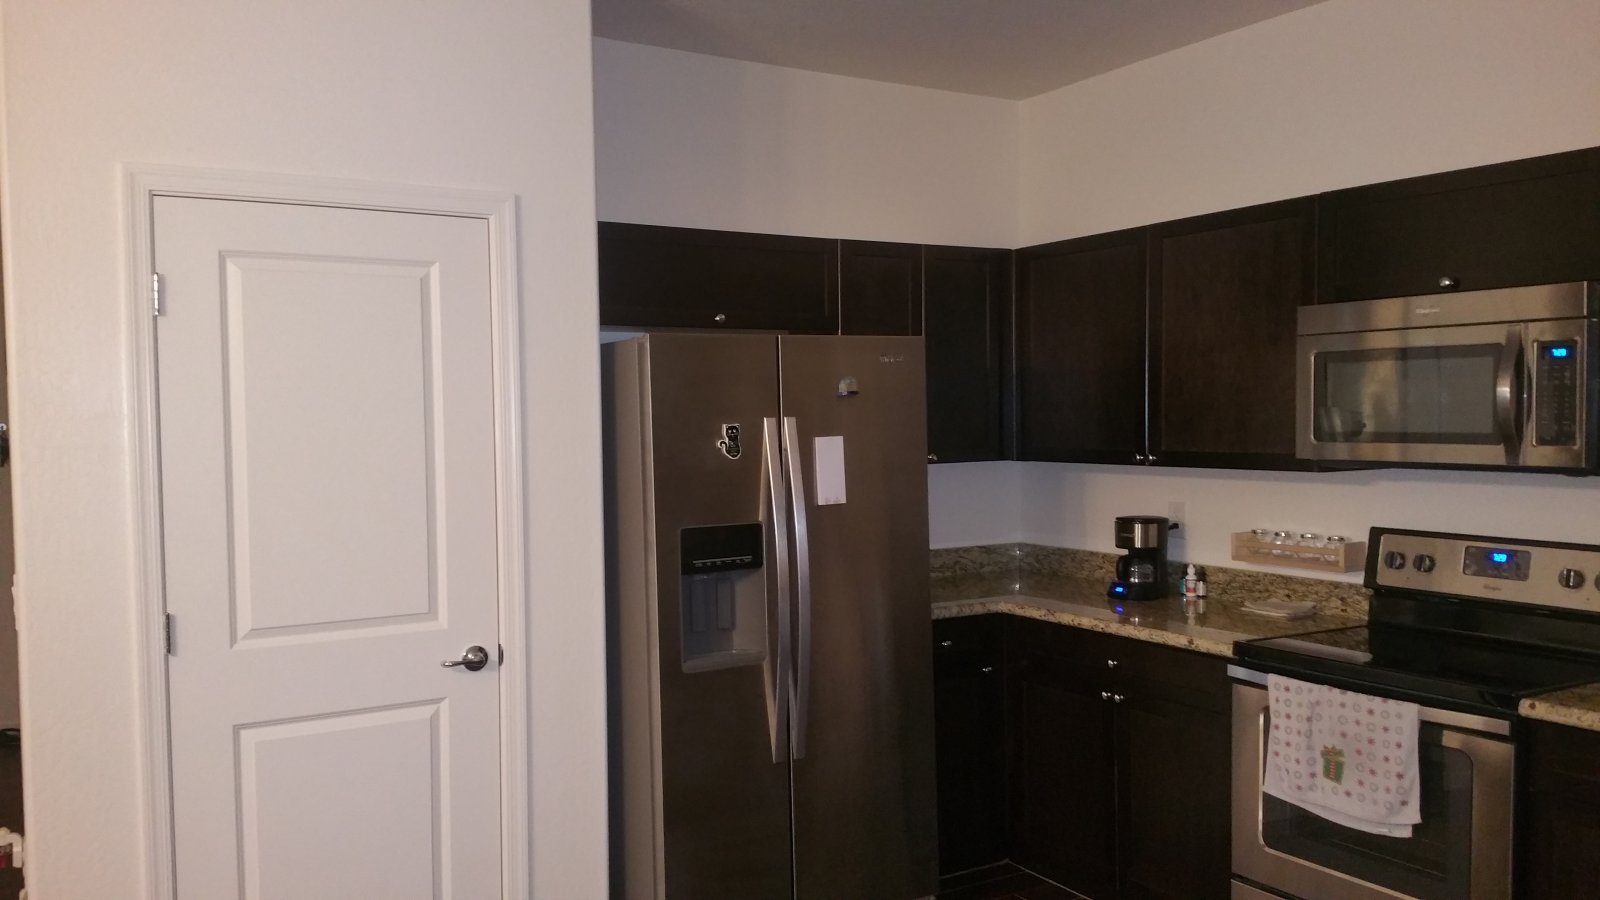 Uncategorized Rent To Own Kitchen Appliances dolce gabbana smeg kitchen appliance collection picture almost new amazing 2016 built home south phoenix rent to own